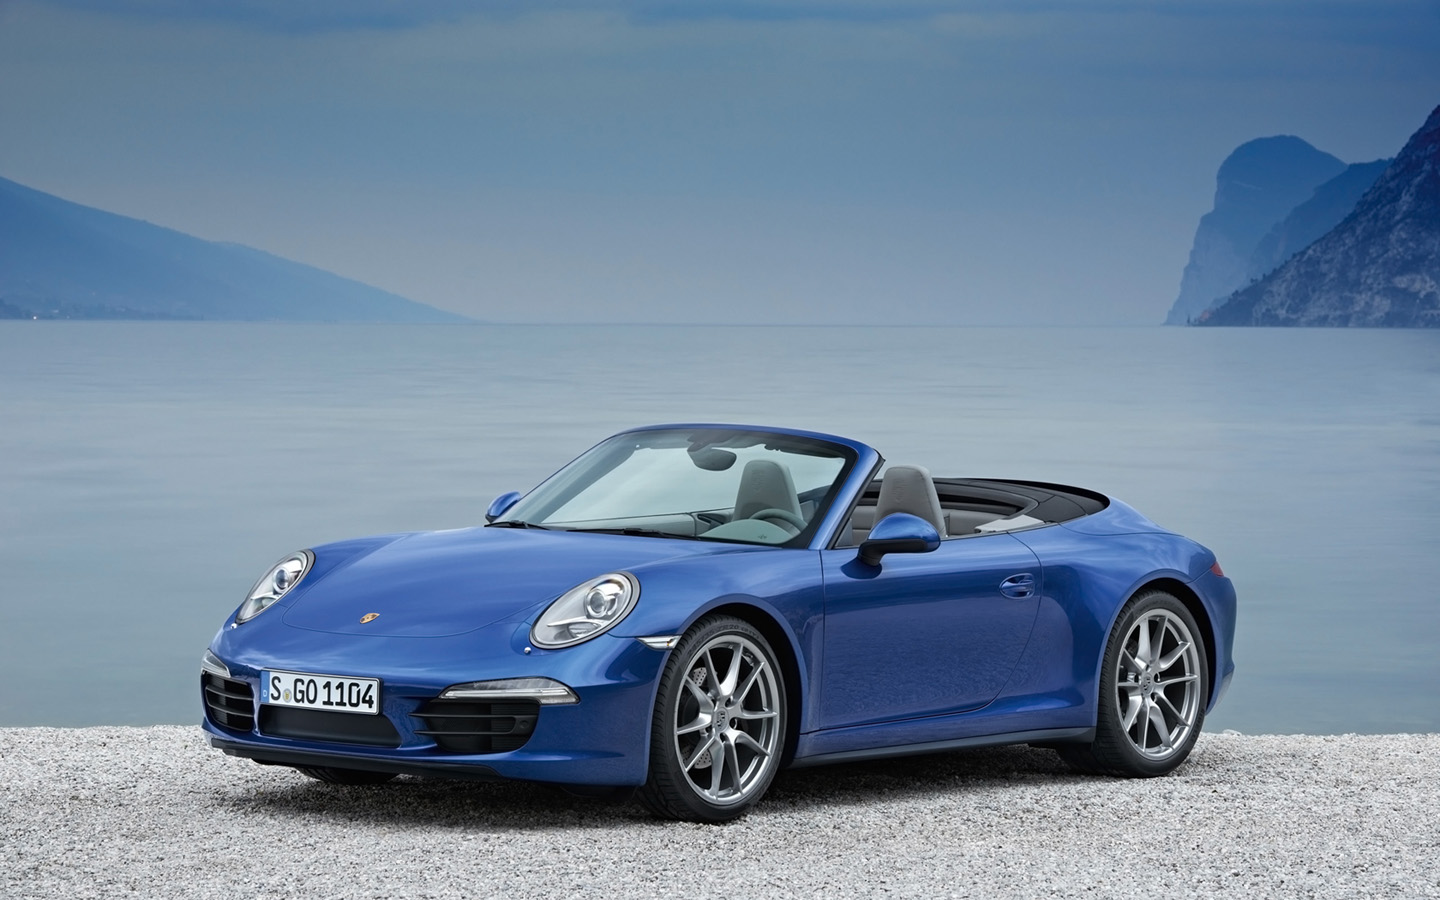 2019 Porsche 911 Carrera 2 Cabrio photo - 3